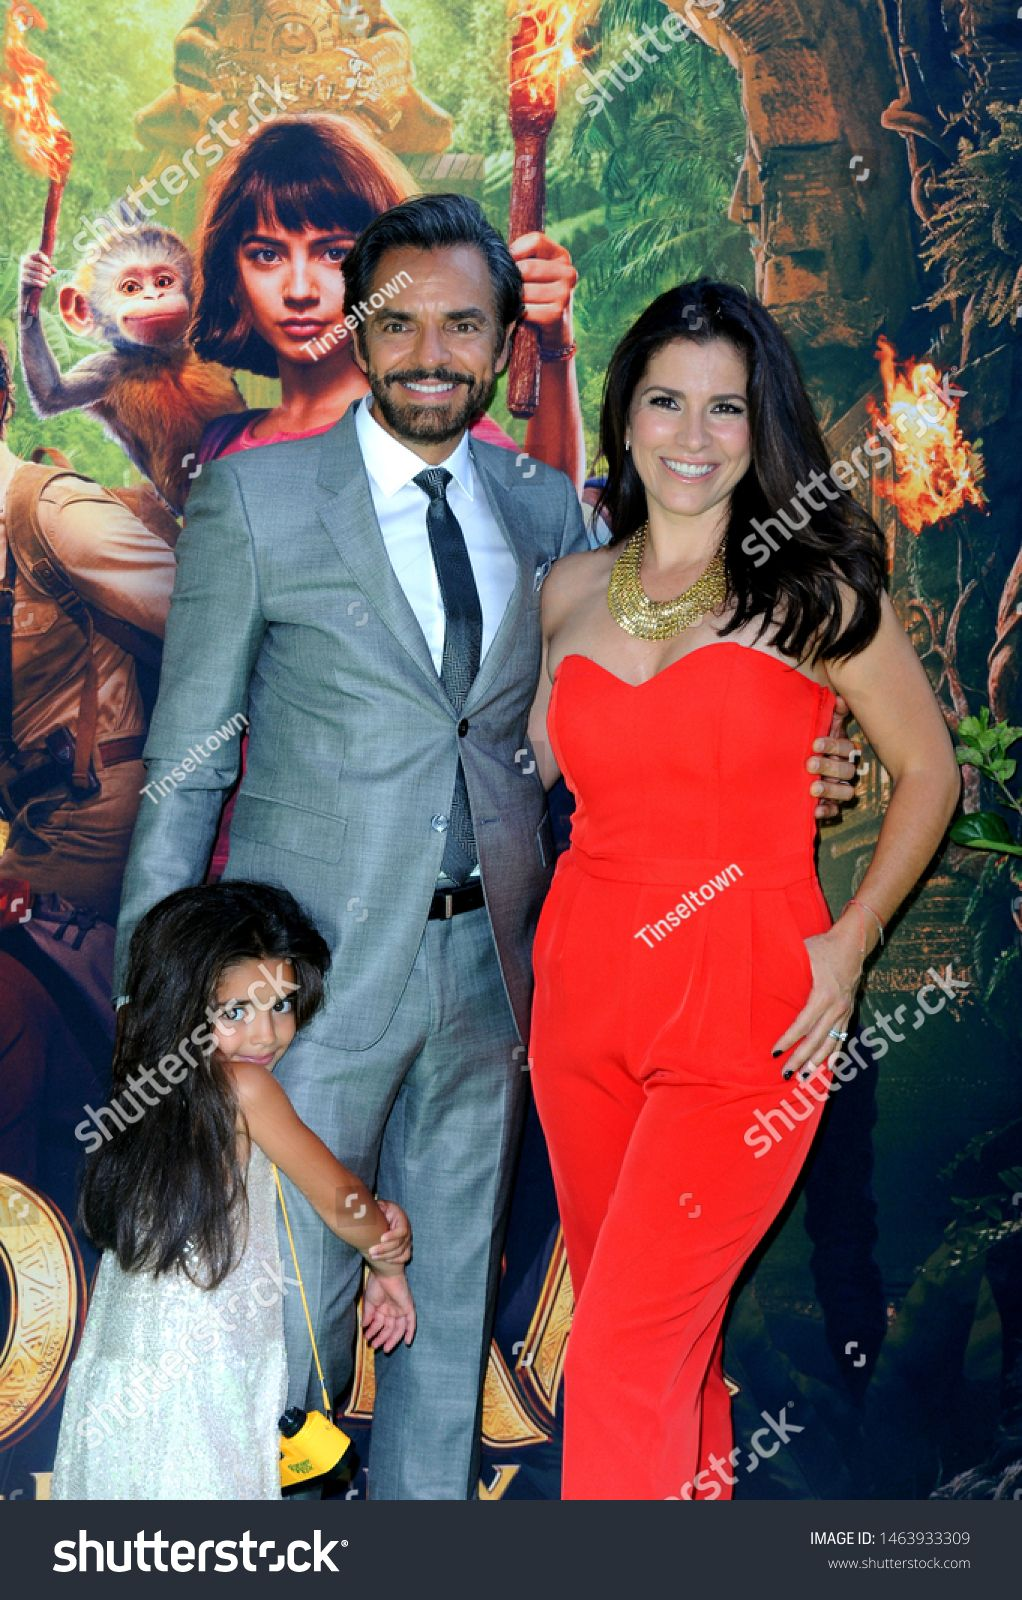 Alessandra Rosaldo Aitana Derbez And Eugenio Derbez At The Los Angeles Premiere Of Dora And The Lost City Of Gold Held In 2020 Photo Editing Stock Photos Alessandra